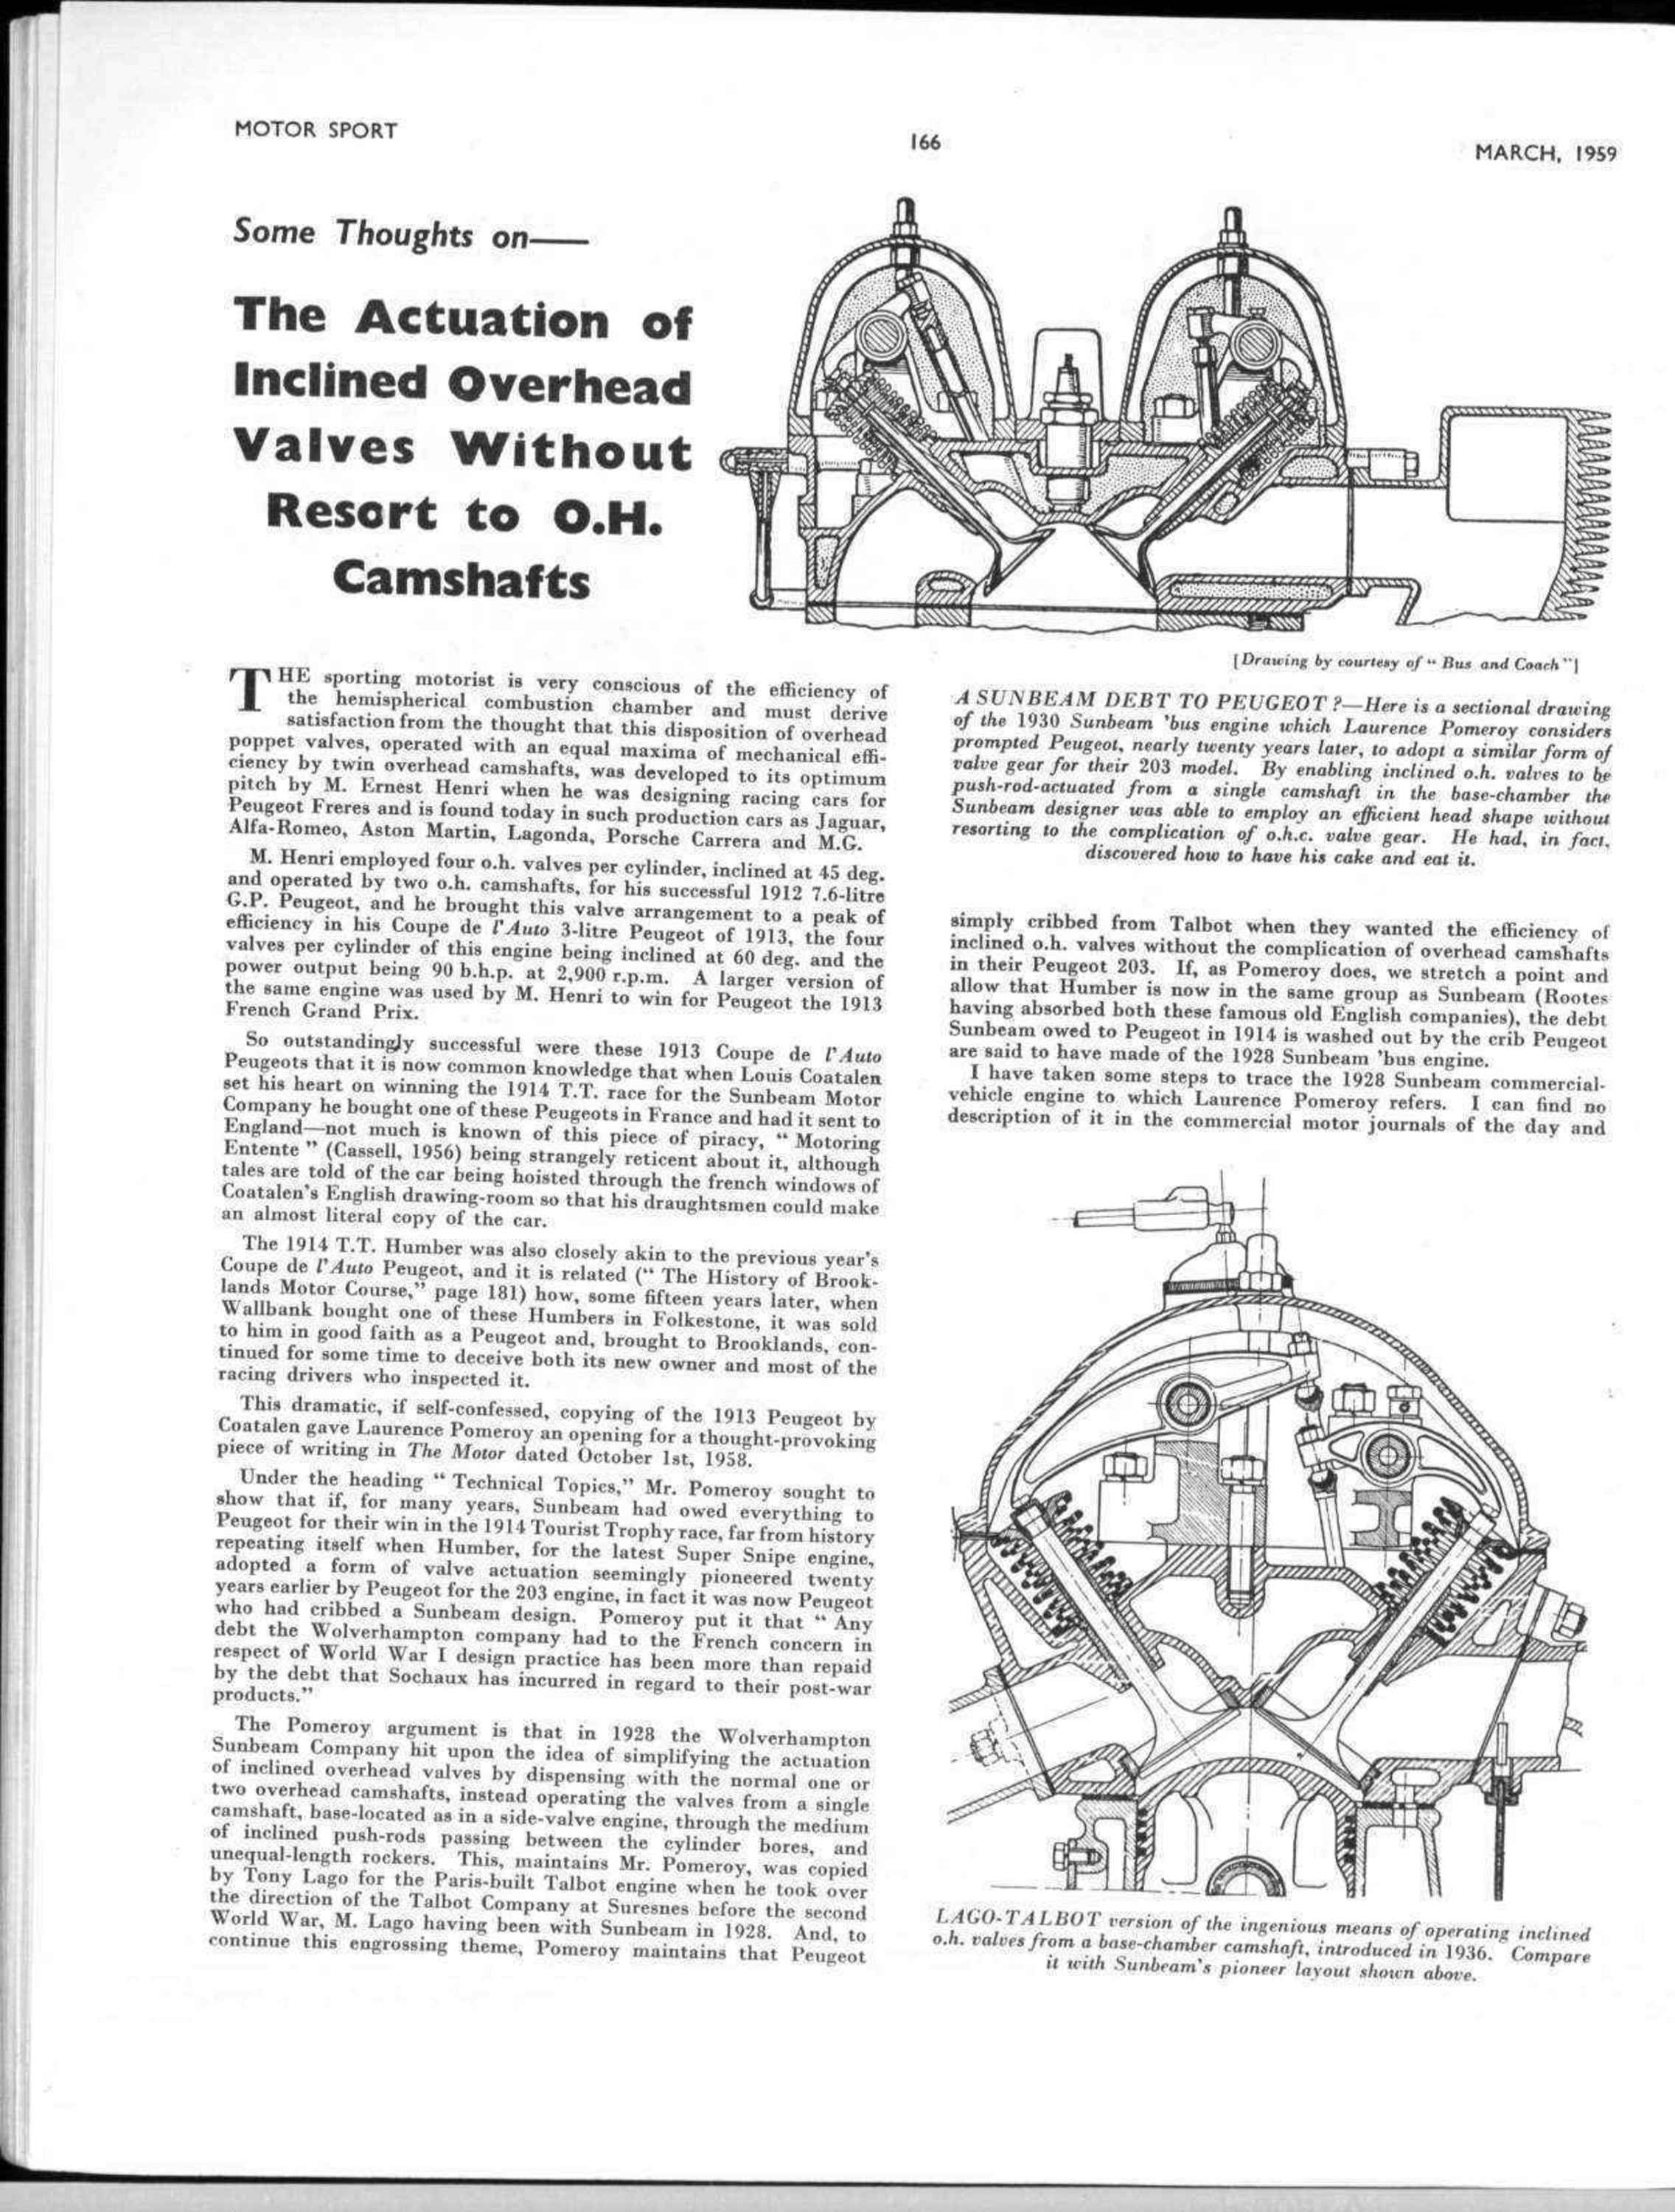 Some Thoughts On The Actuation Of Inclined Overhead Valves Without Double Cam Engine Diagram Resort To Oh Camshafts Motor Sport Magazine Archive